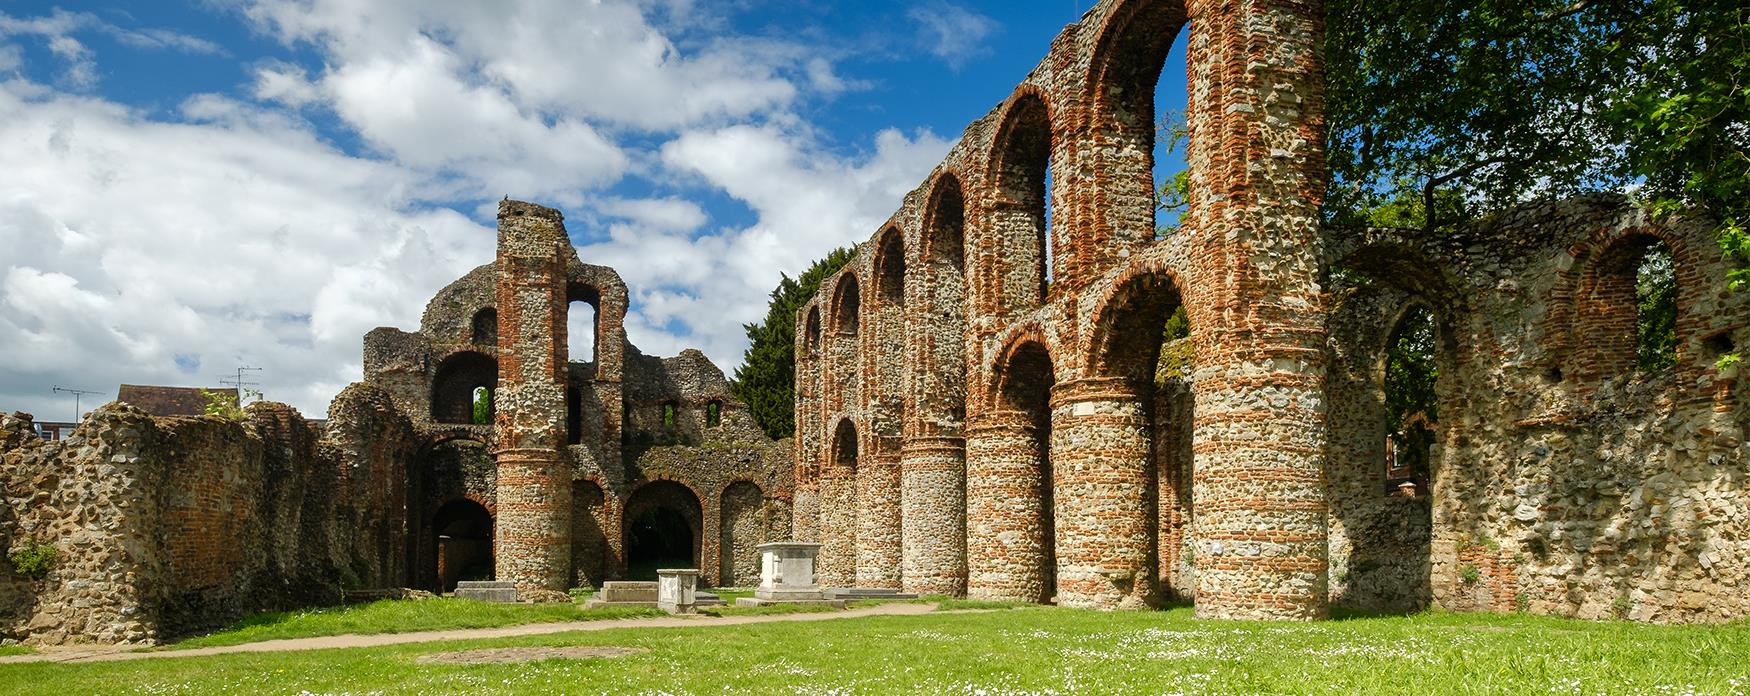 St Botolph's Priory in Colchester